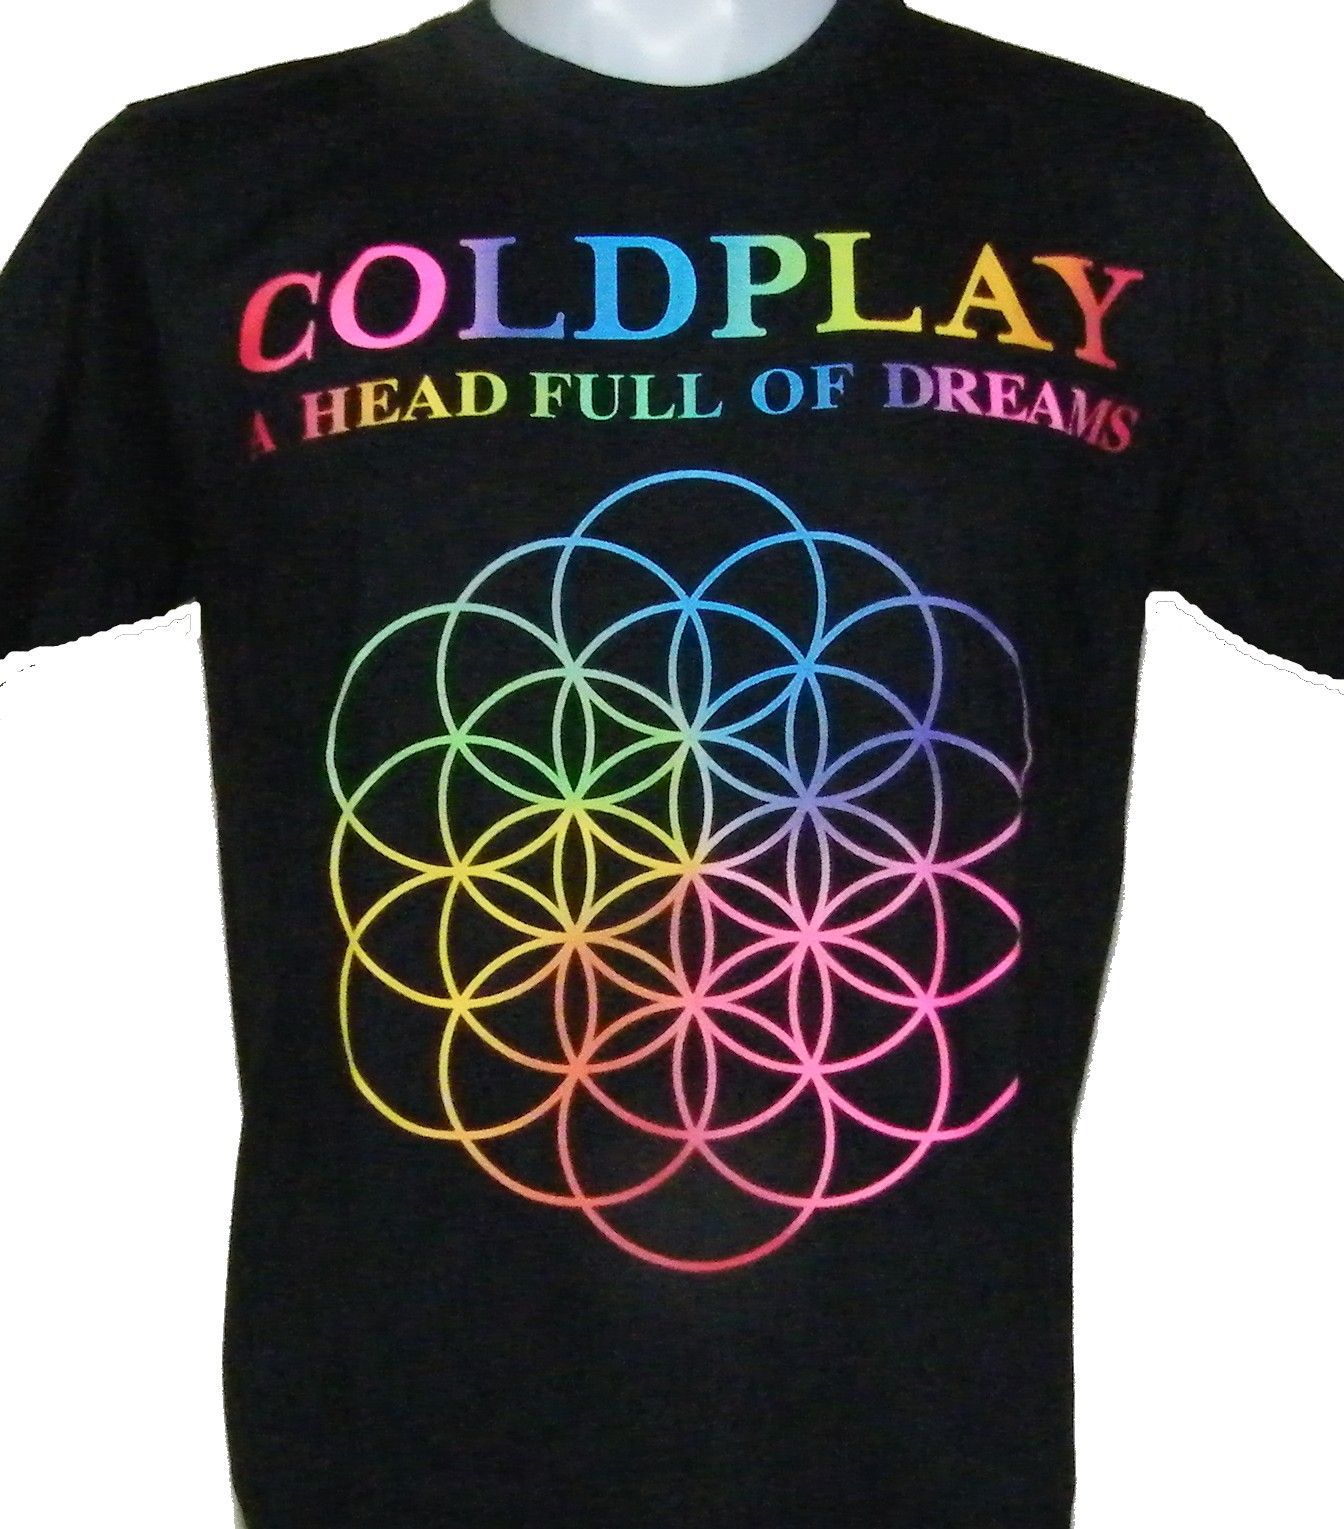 Used Clothing Wholesale >> Coldplay t-shirt A Head Full of Dreams size L – RoxxBKK